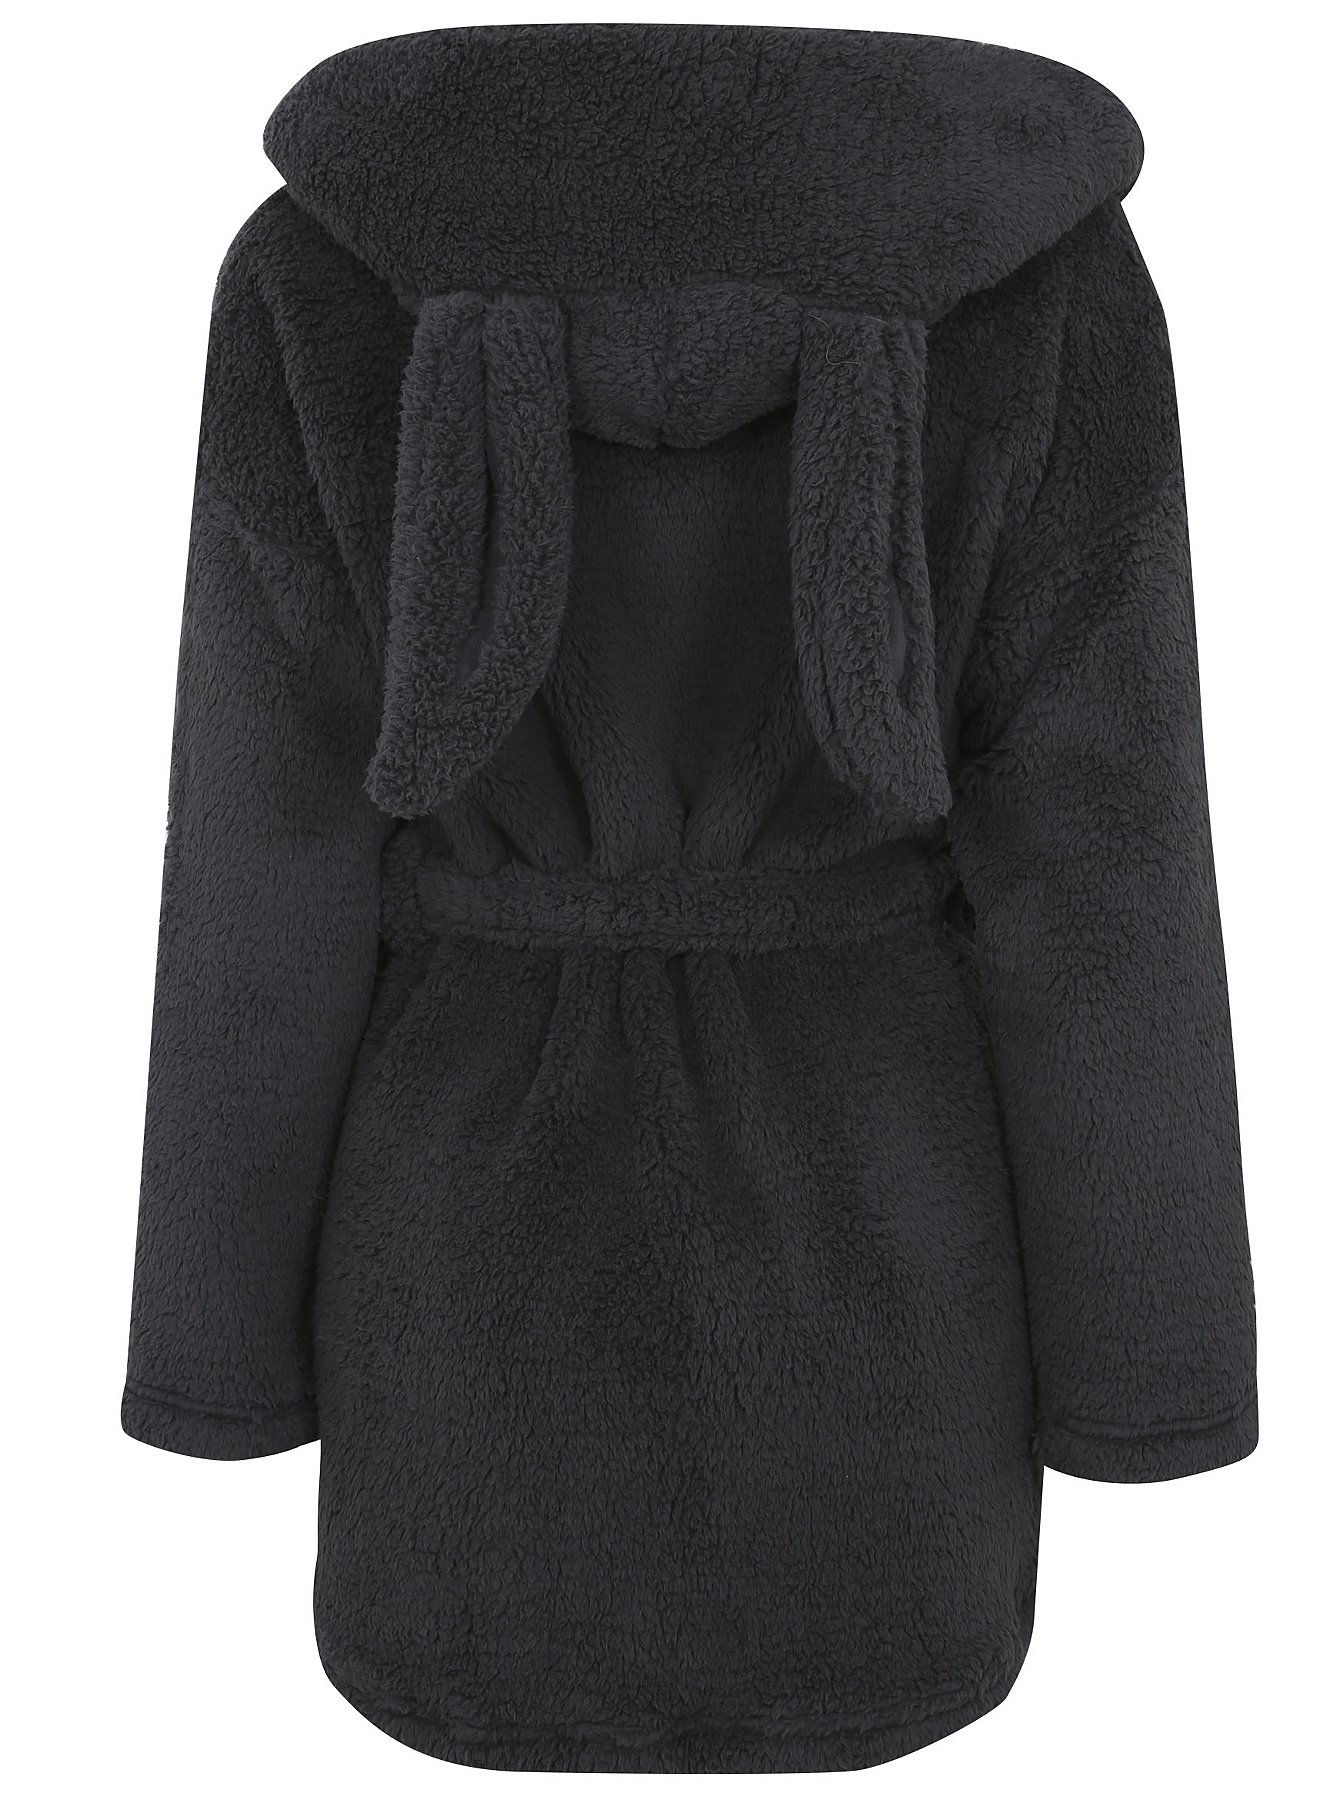 Rabbit Ears Dressing Gown | Women | George at ASDA